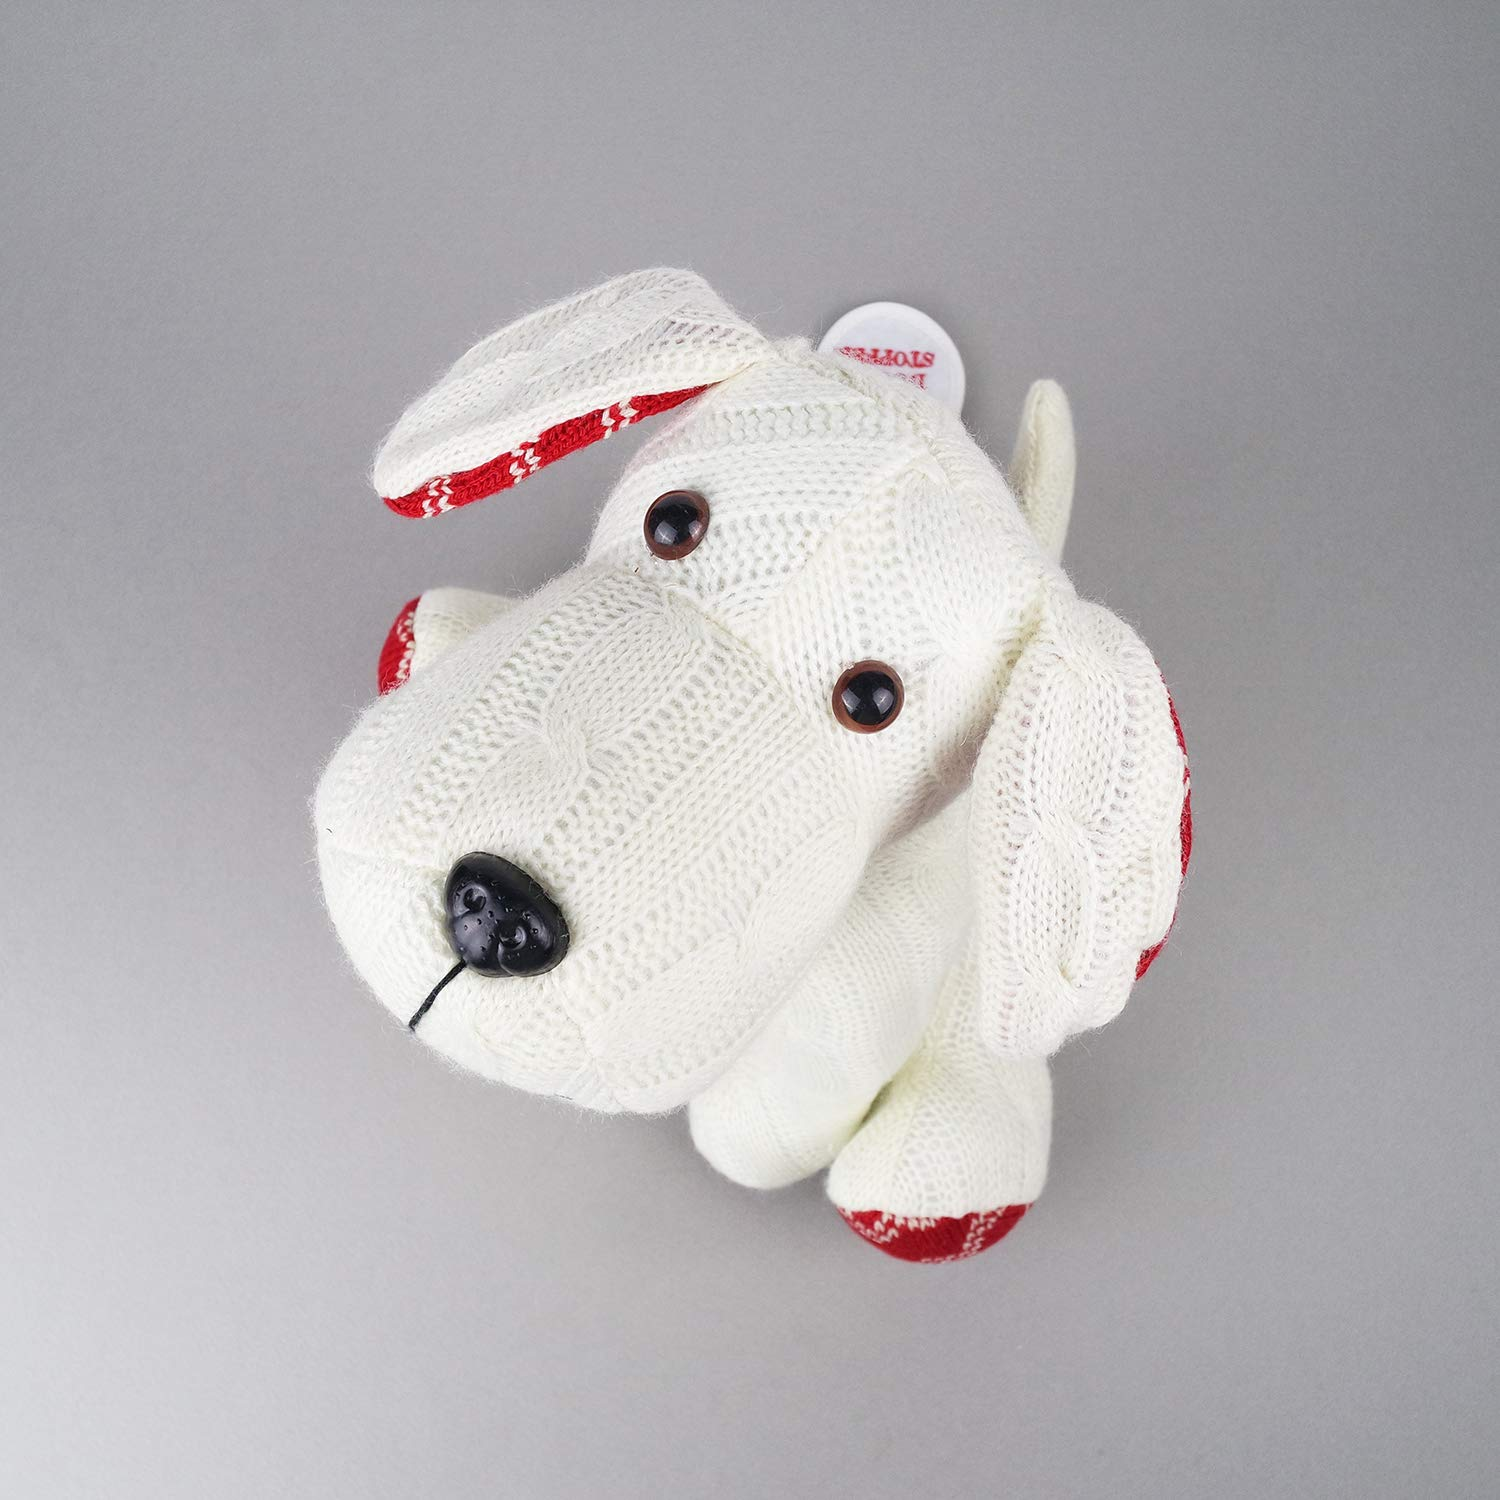 Stuffed Animal White Dog Door Stopper 1.73lb Home Decor Cable Knit Pattern by dwelling (Image #6)